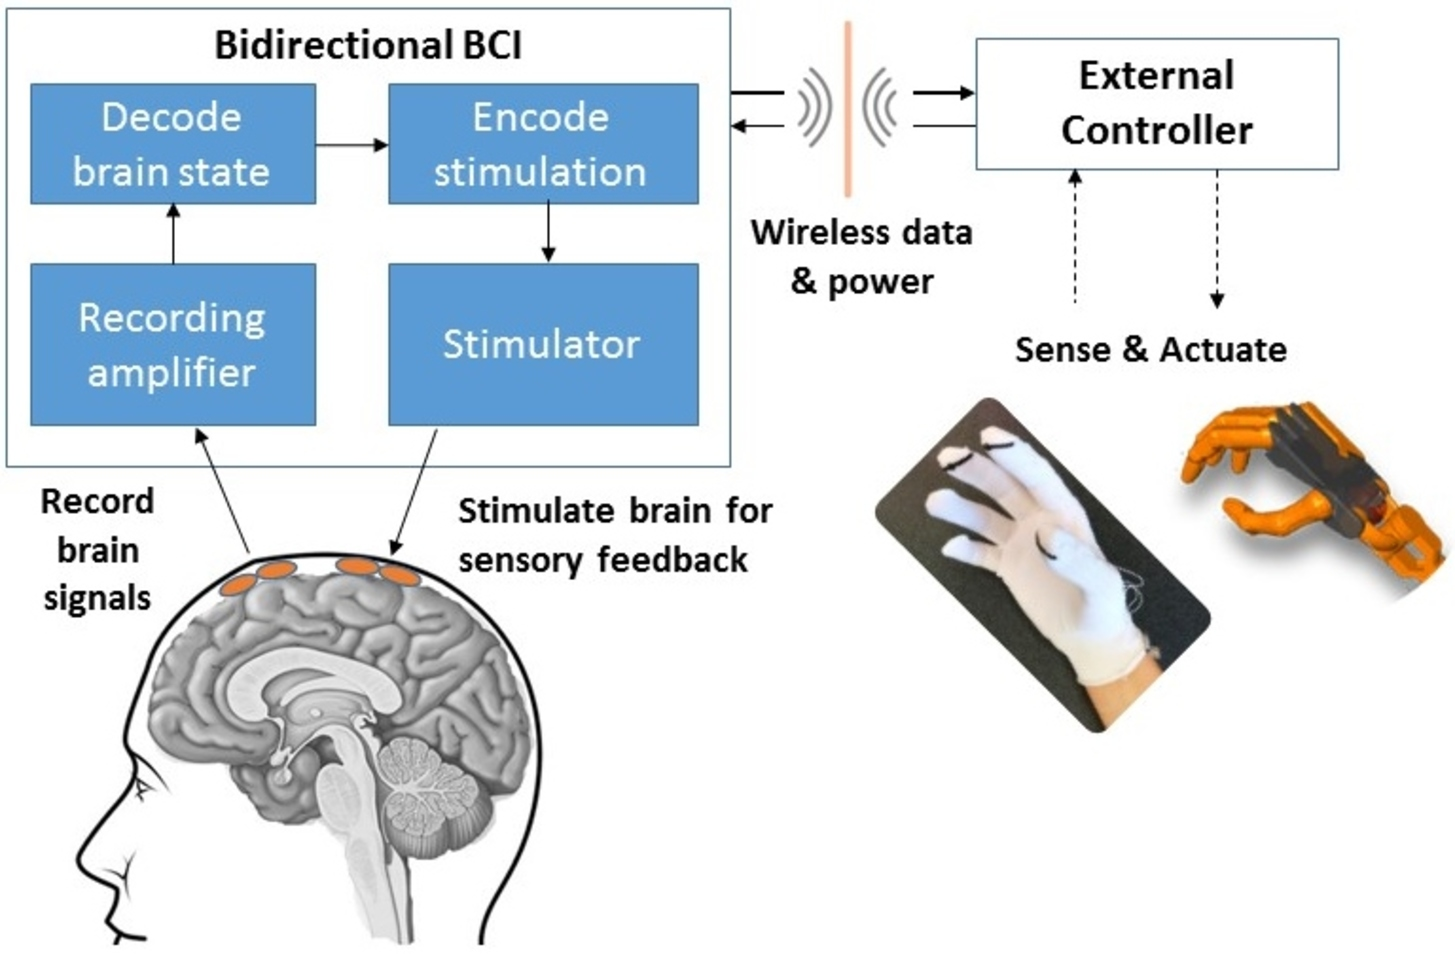 A bidirectional brain-computer interface (BBCI) can both record signals from the brain and send information back to the brain through stimulation. - Image Credit: Center for Sensorimotor Neural Engineering (CSNE),  CC BY-ND